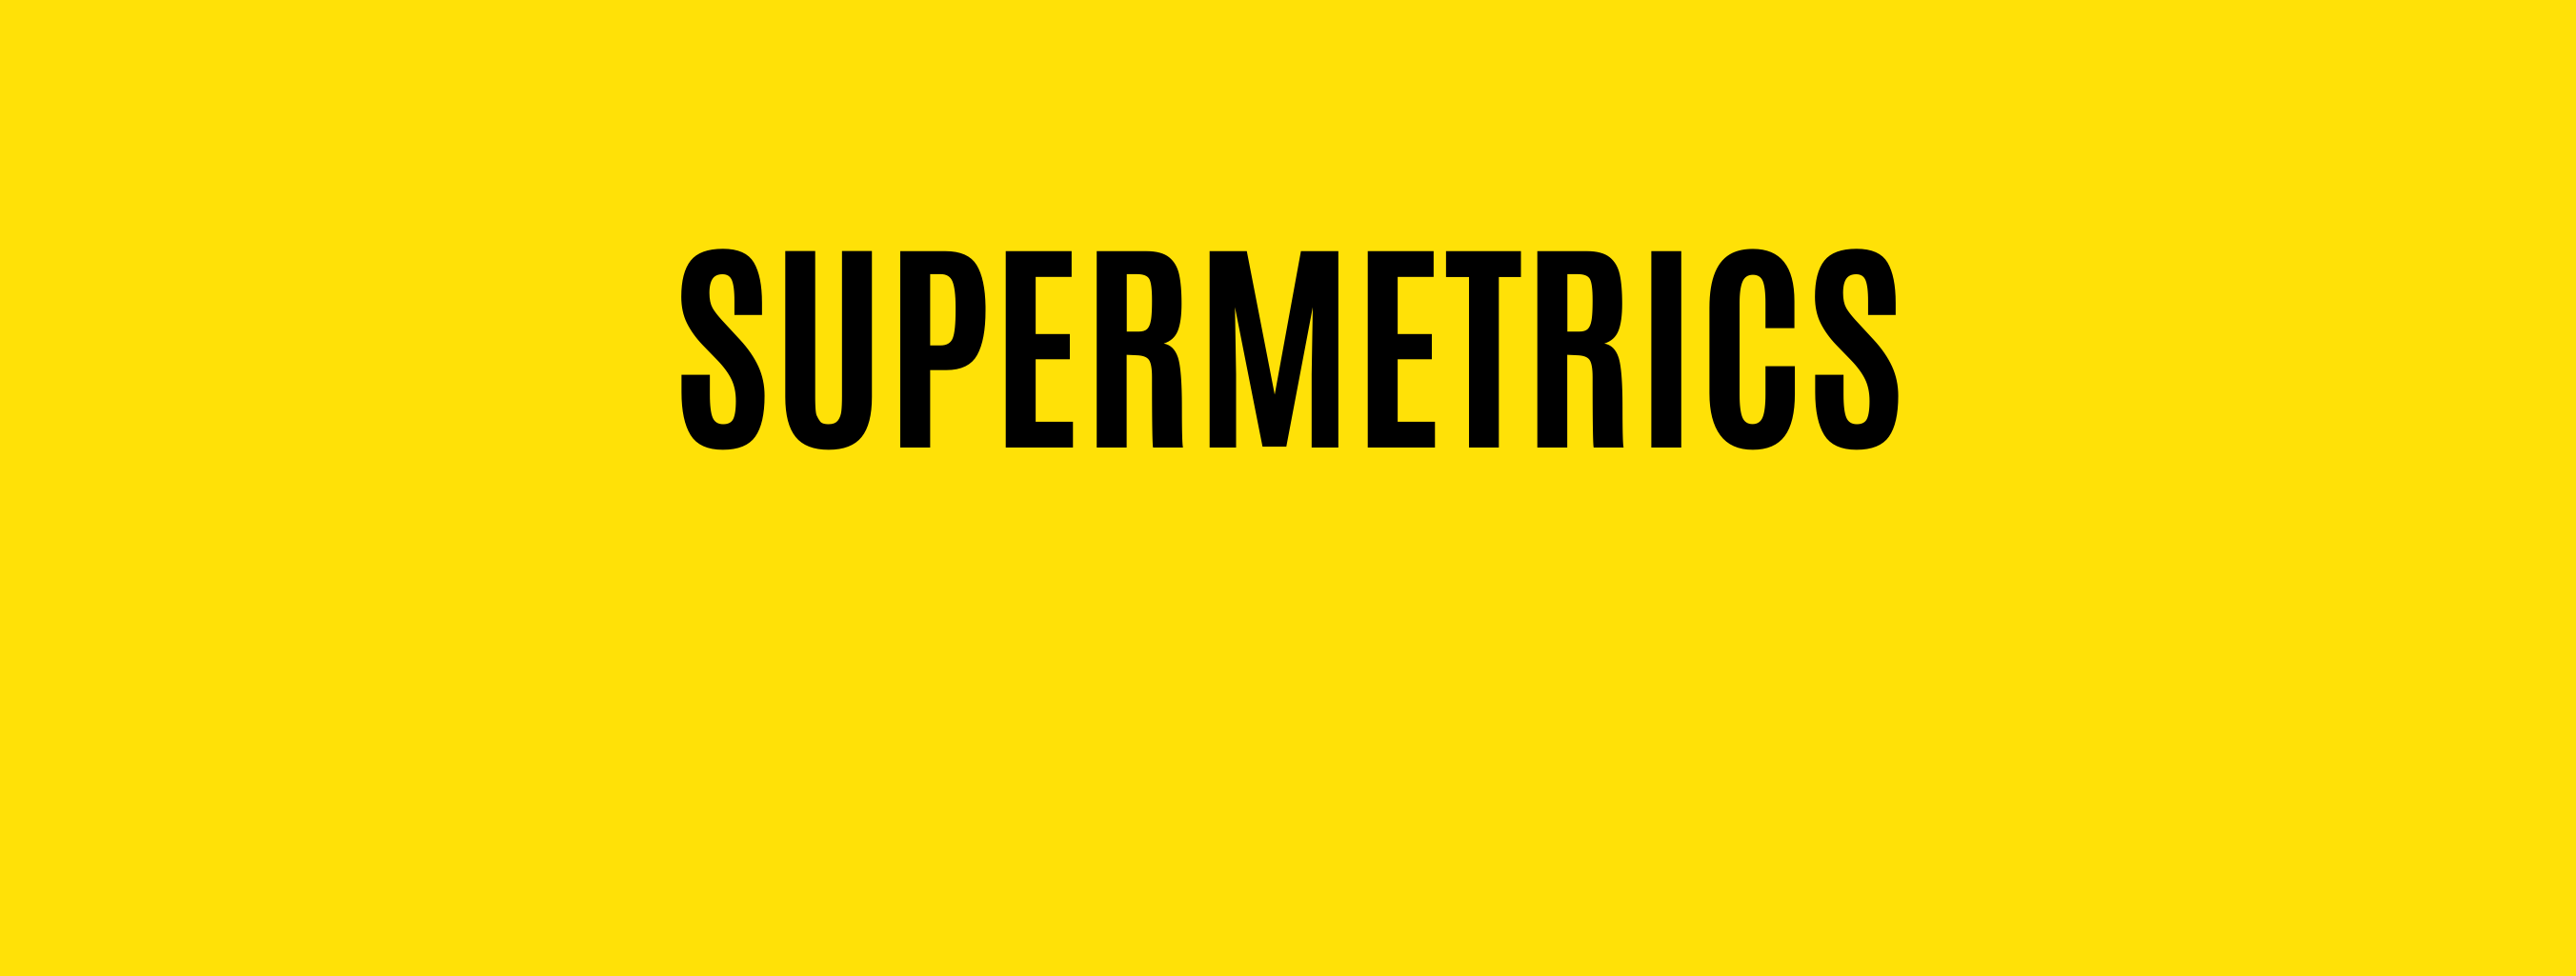 Hire Supermetrics Specialists - Platform Experts for Supermetrics